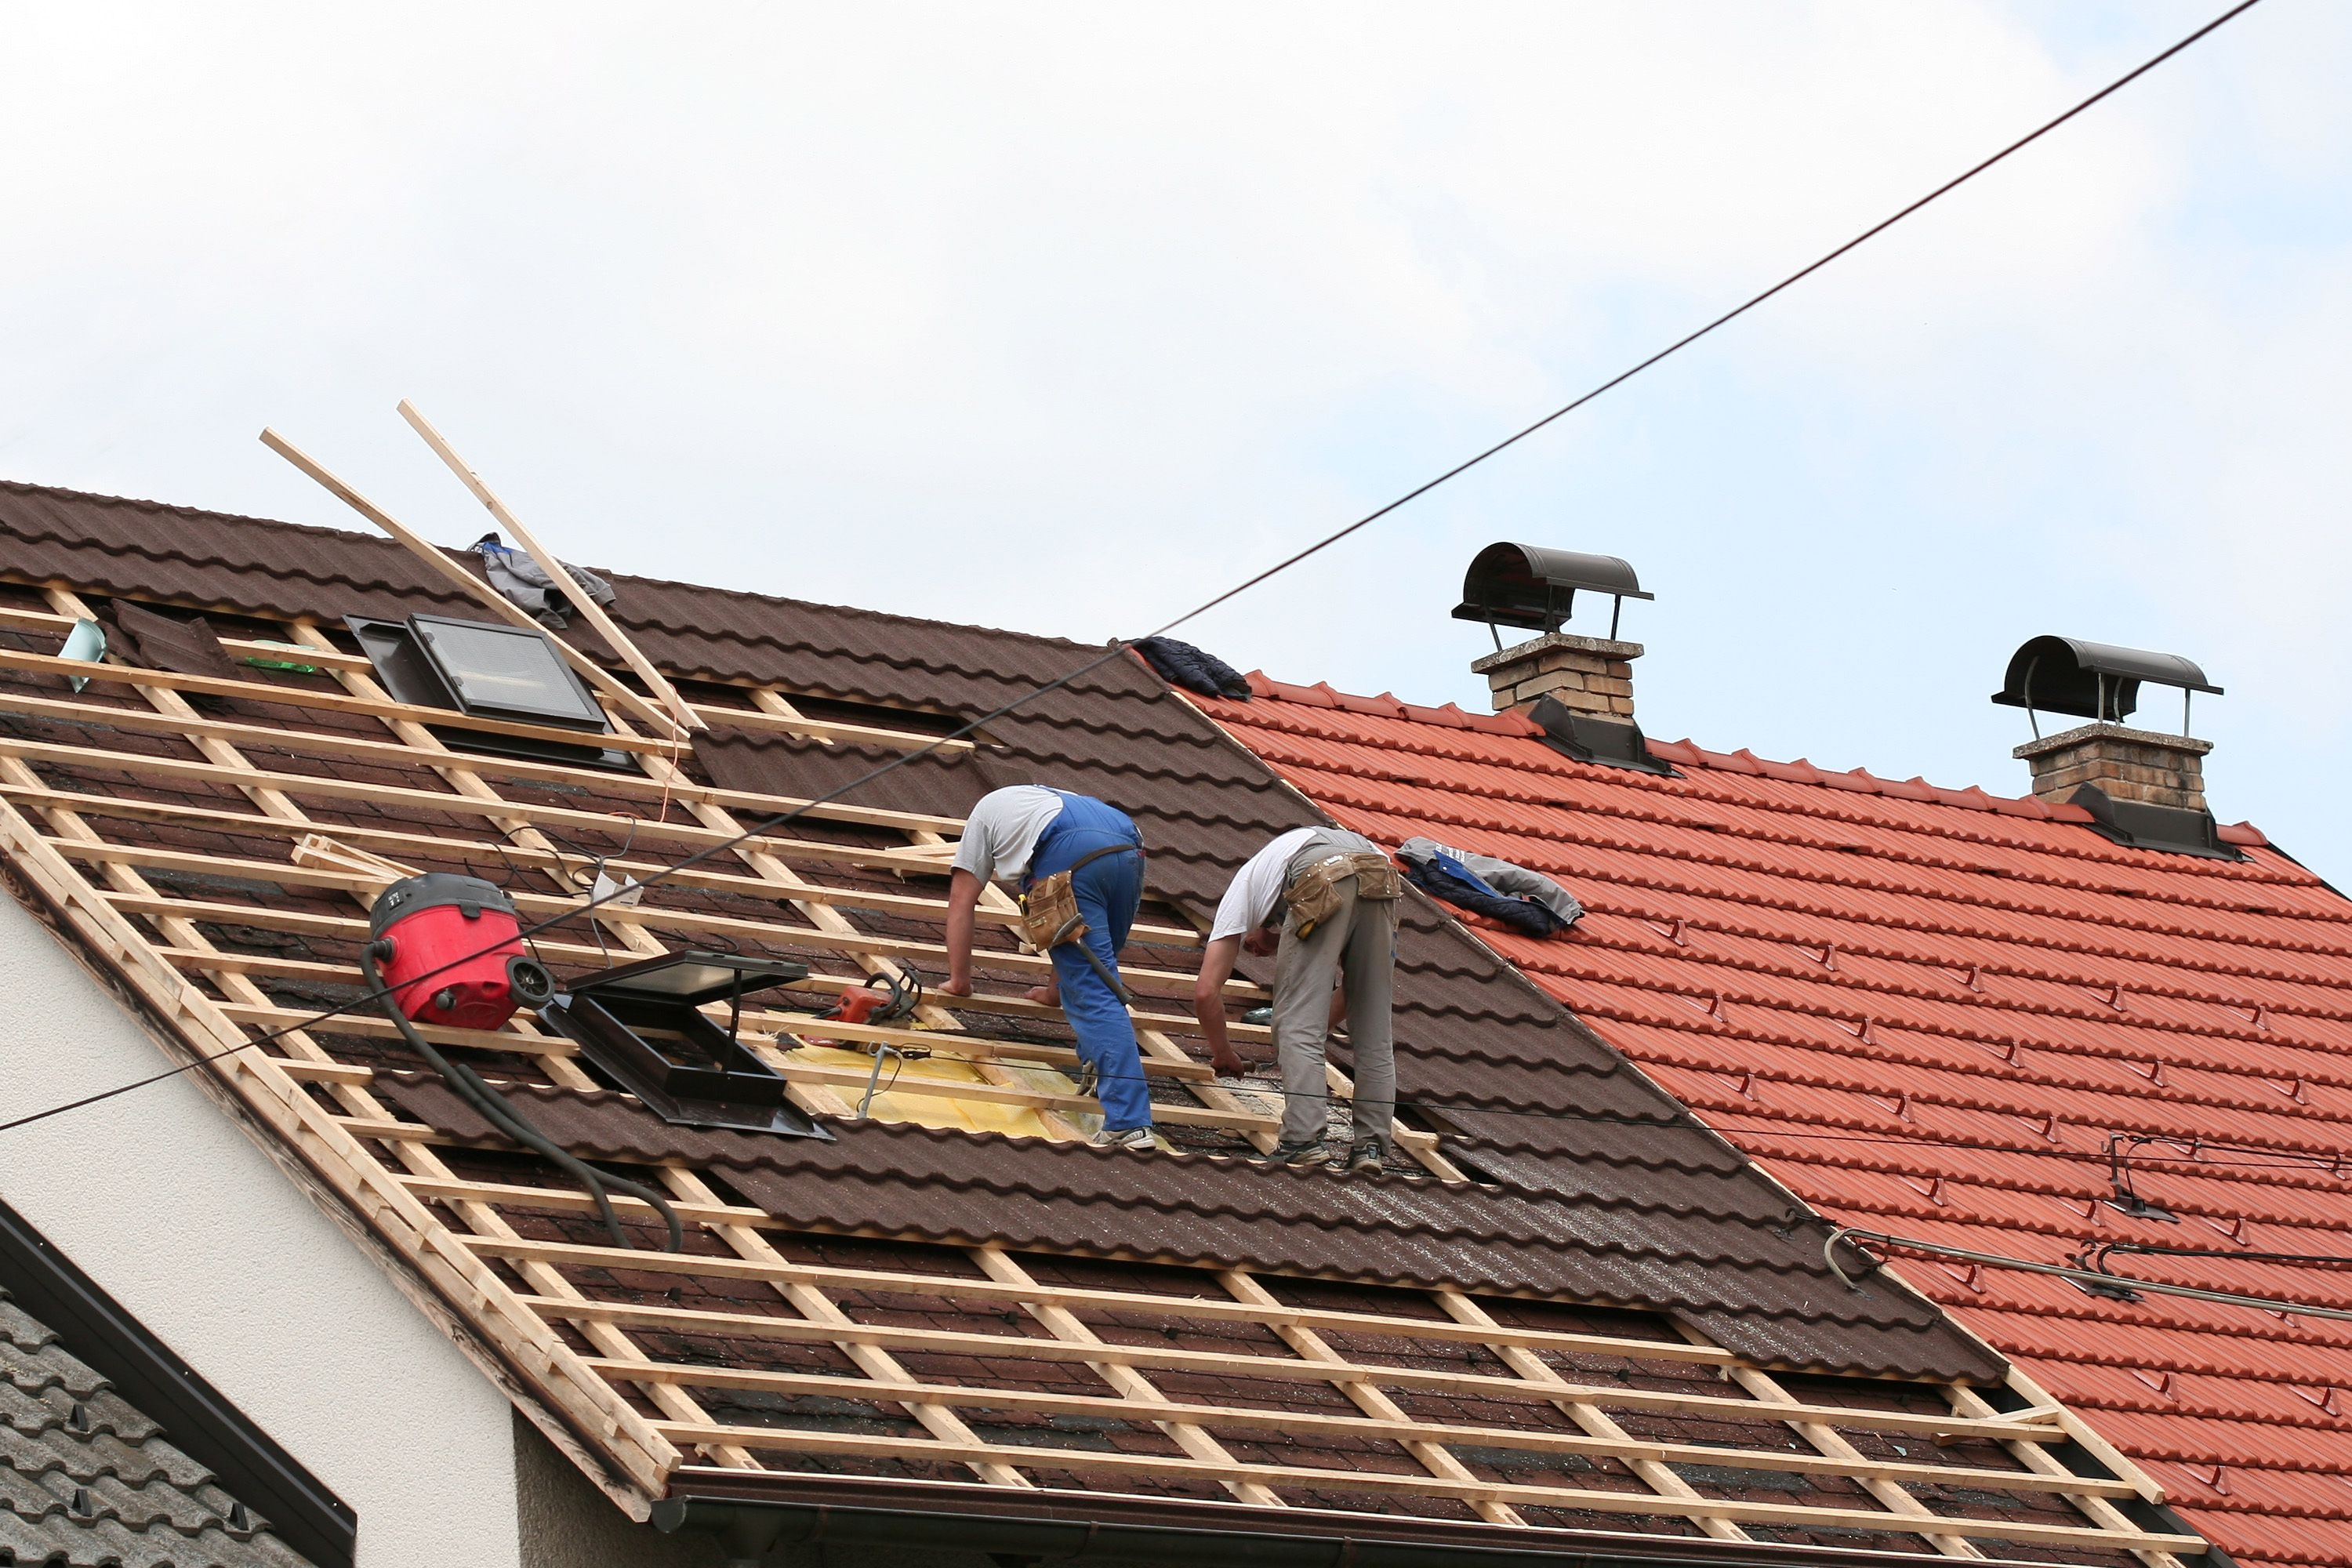 A Professional Building Company Of Roof Repairs In North West London Has The Expertise And The Assets To Get Your Roof Repair Roof Installation My Home Design